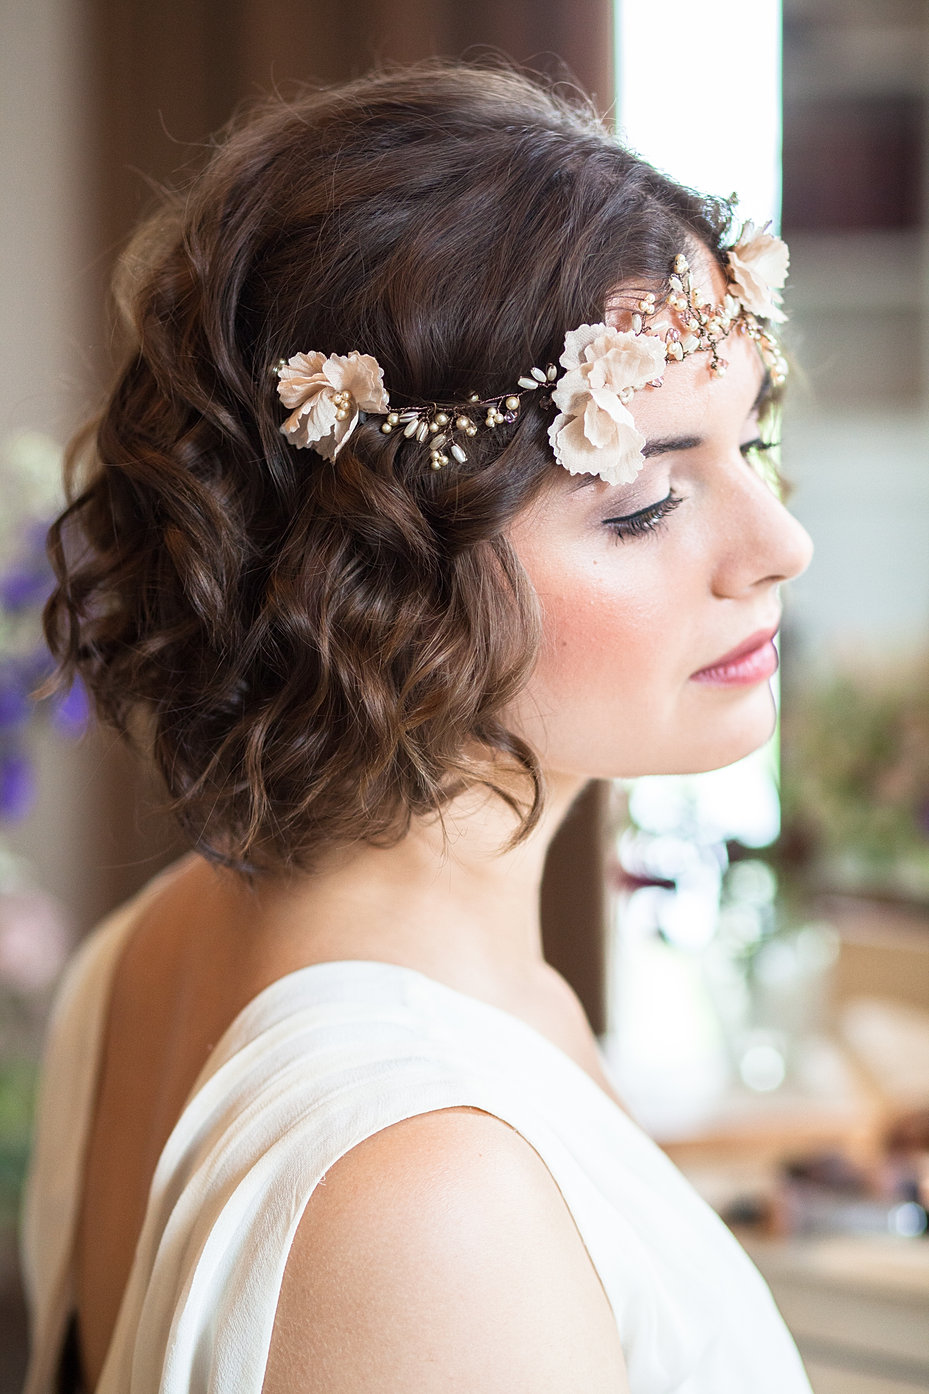 the bridal stylists - wedding makeup & hair styling